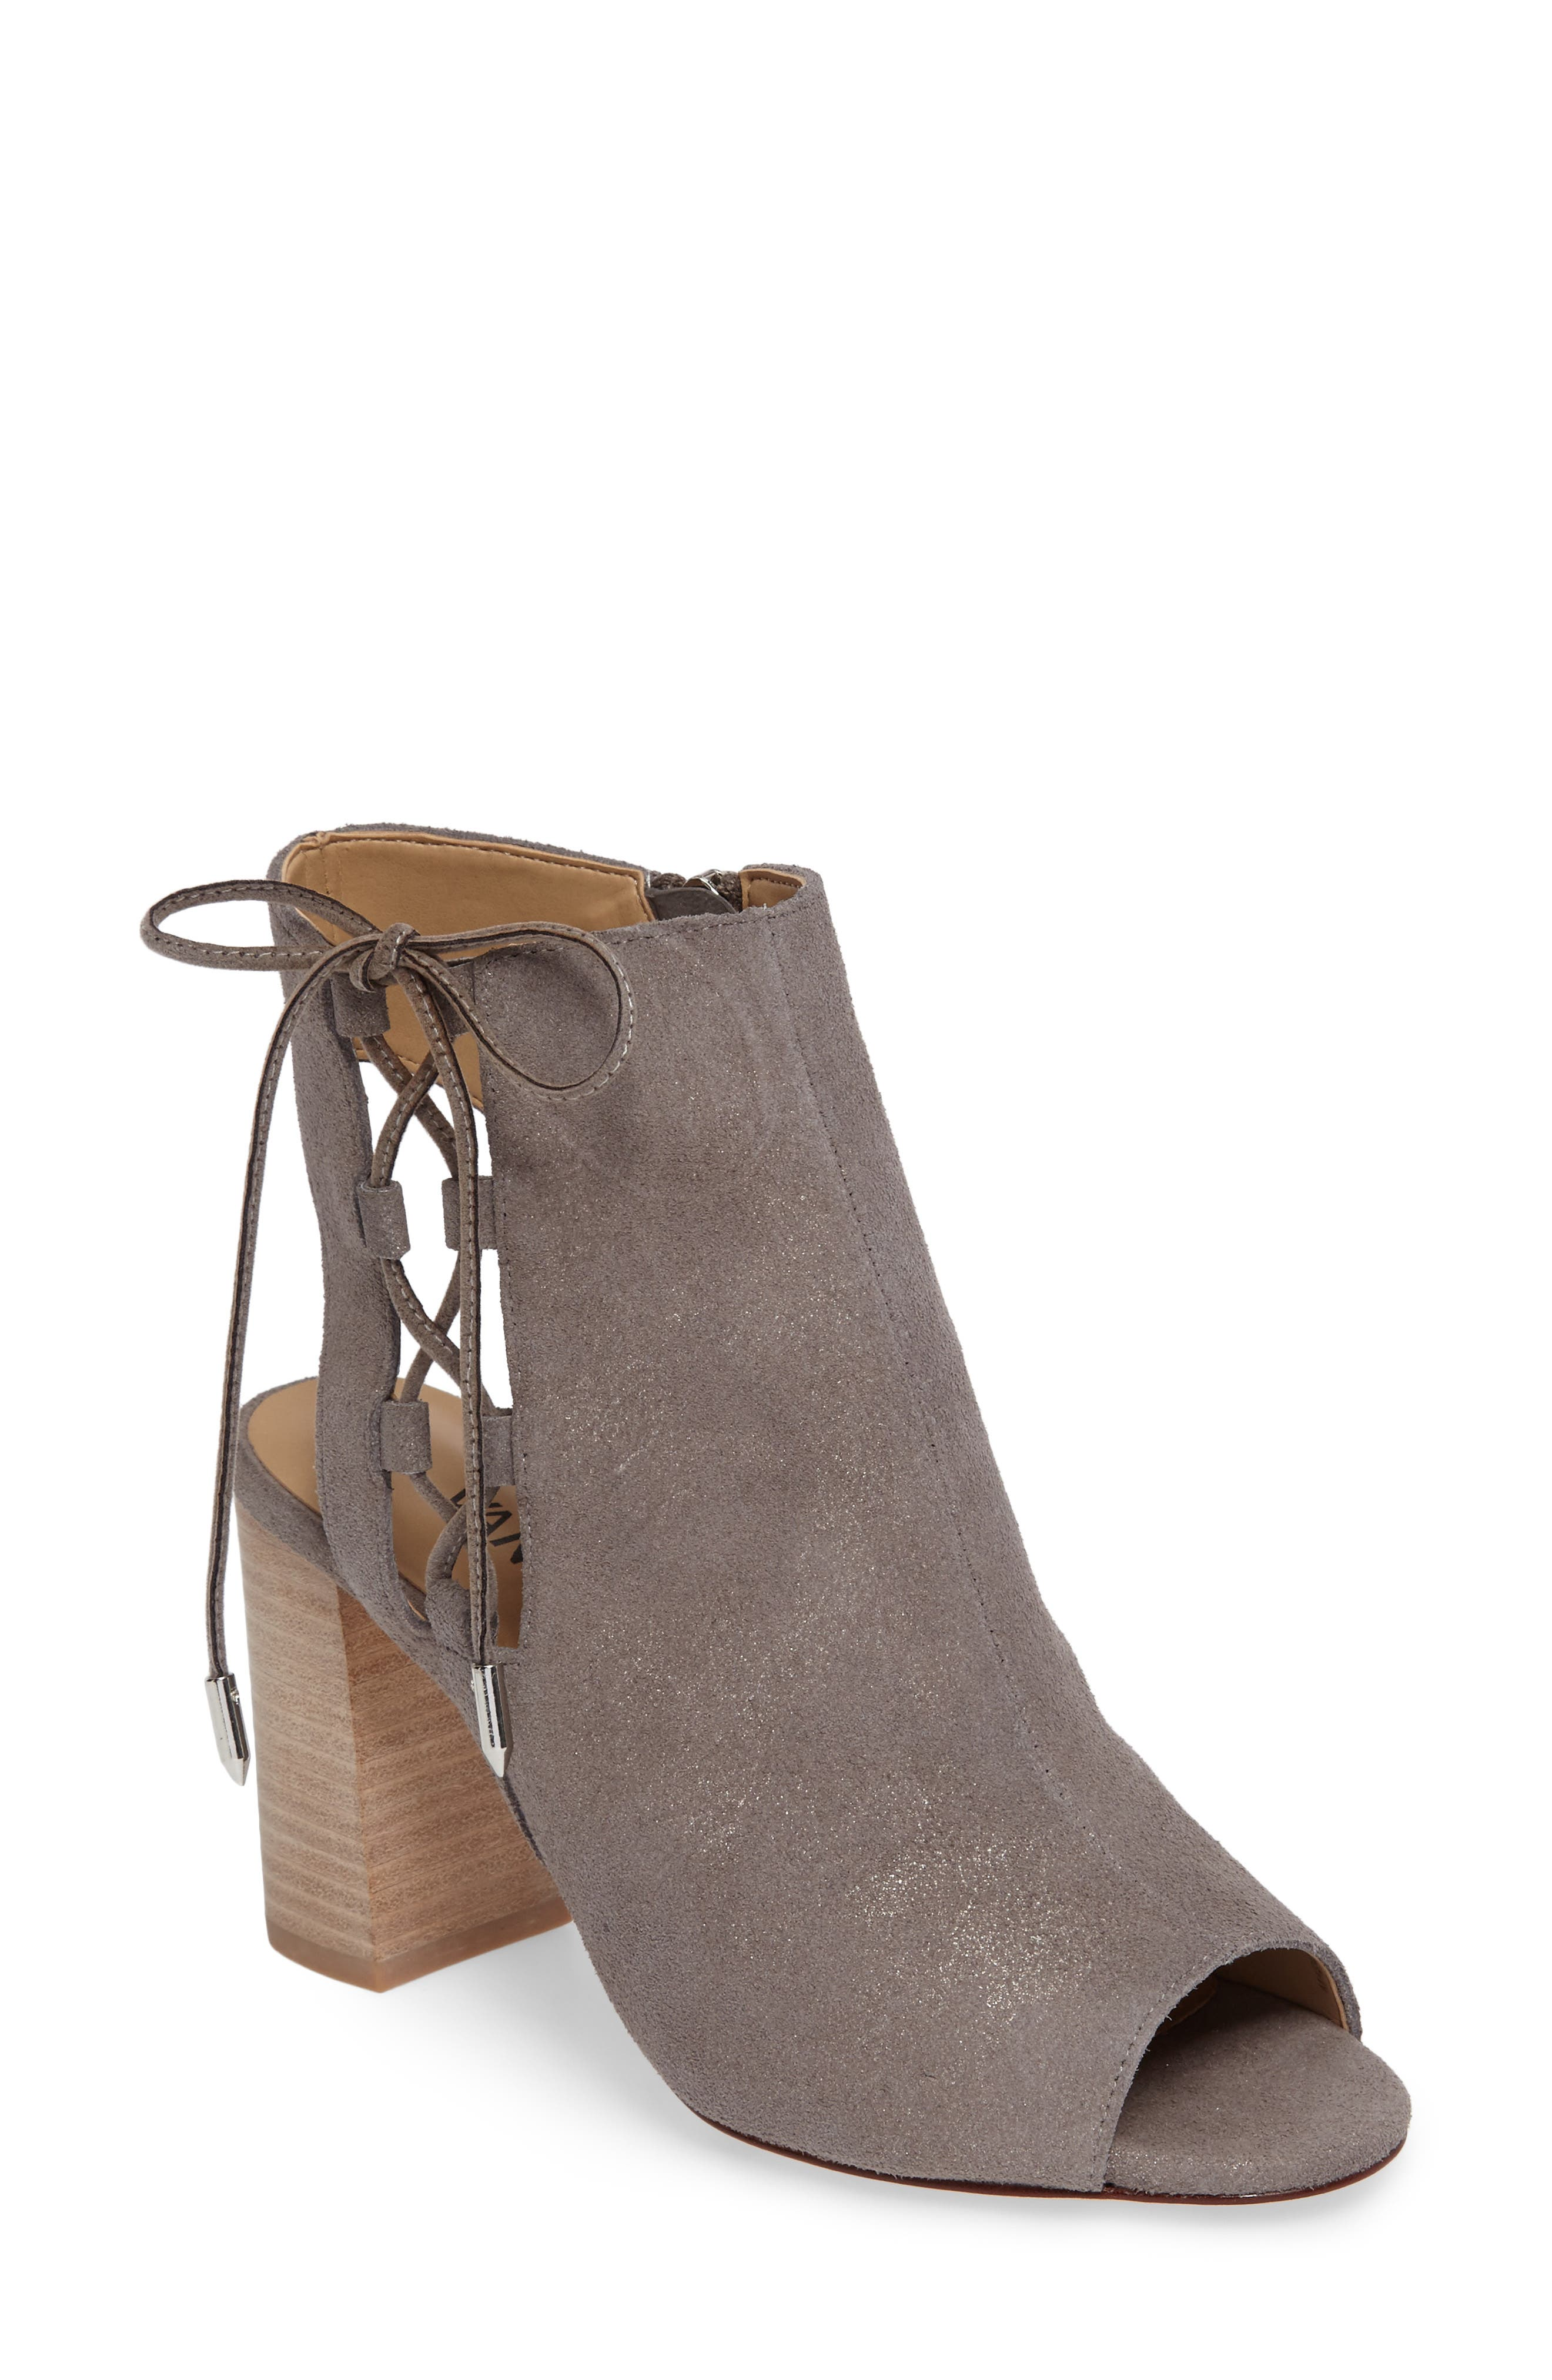 Better Block Heel Sandal,                             Main thumbnail 1, color,                             Taupe Rory Suede